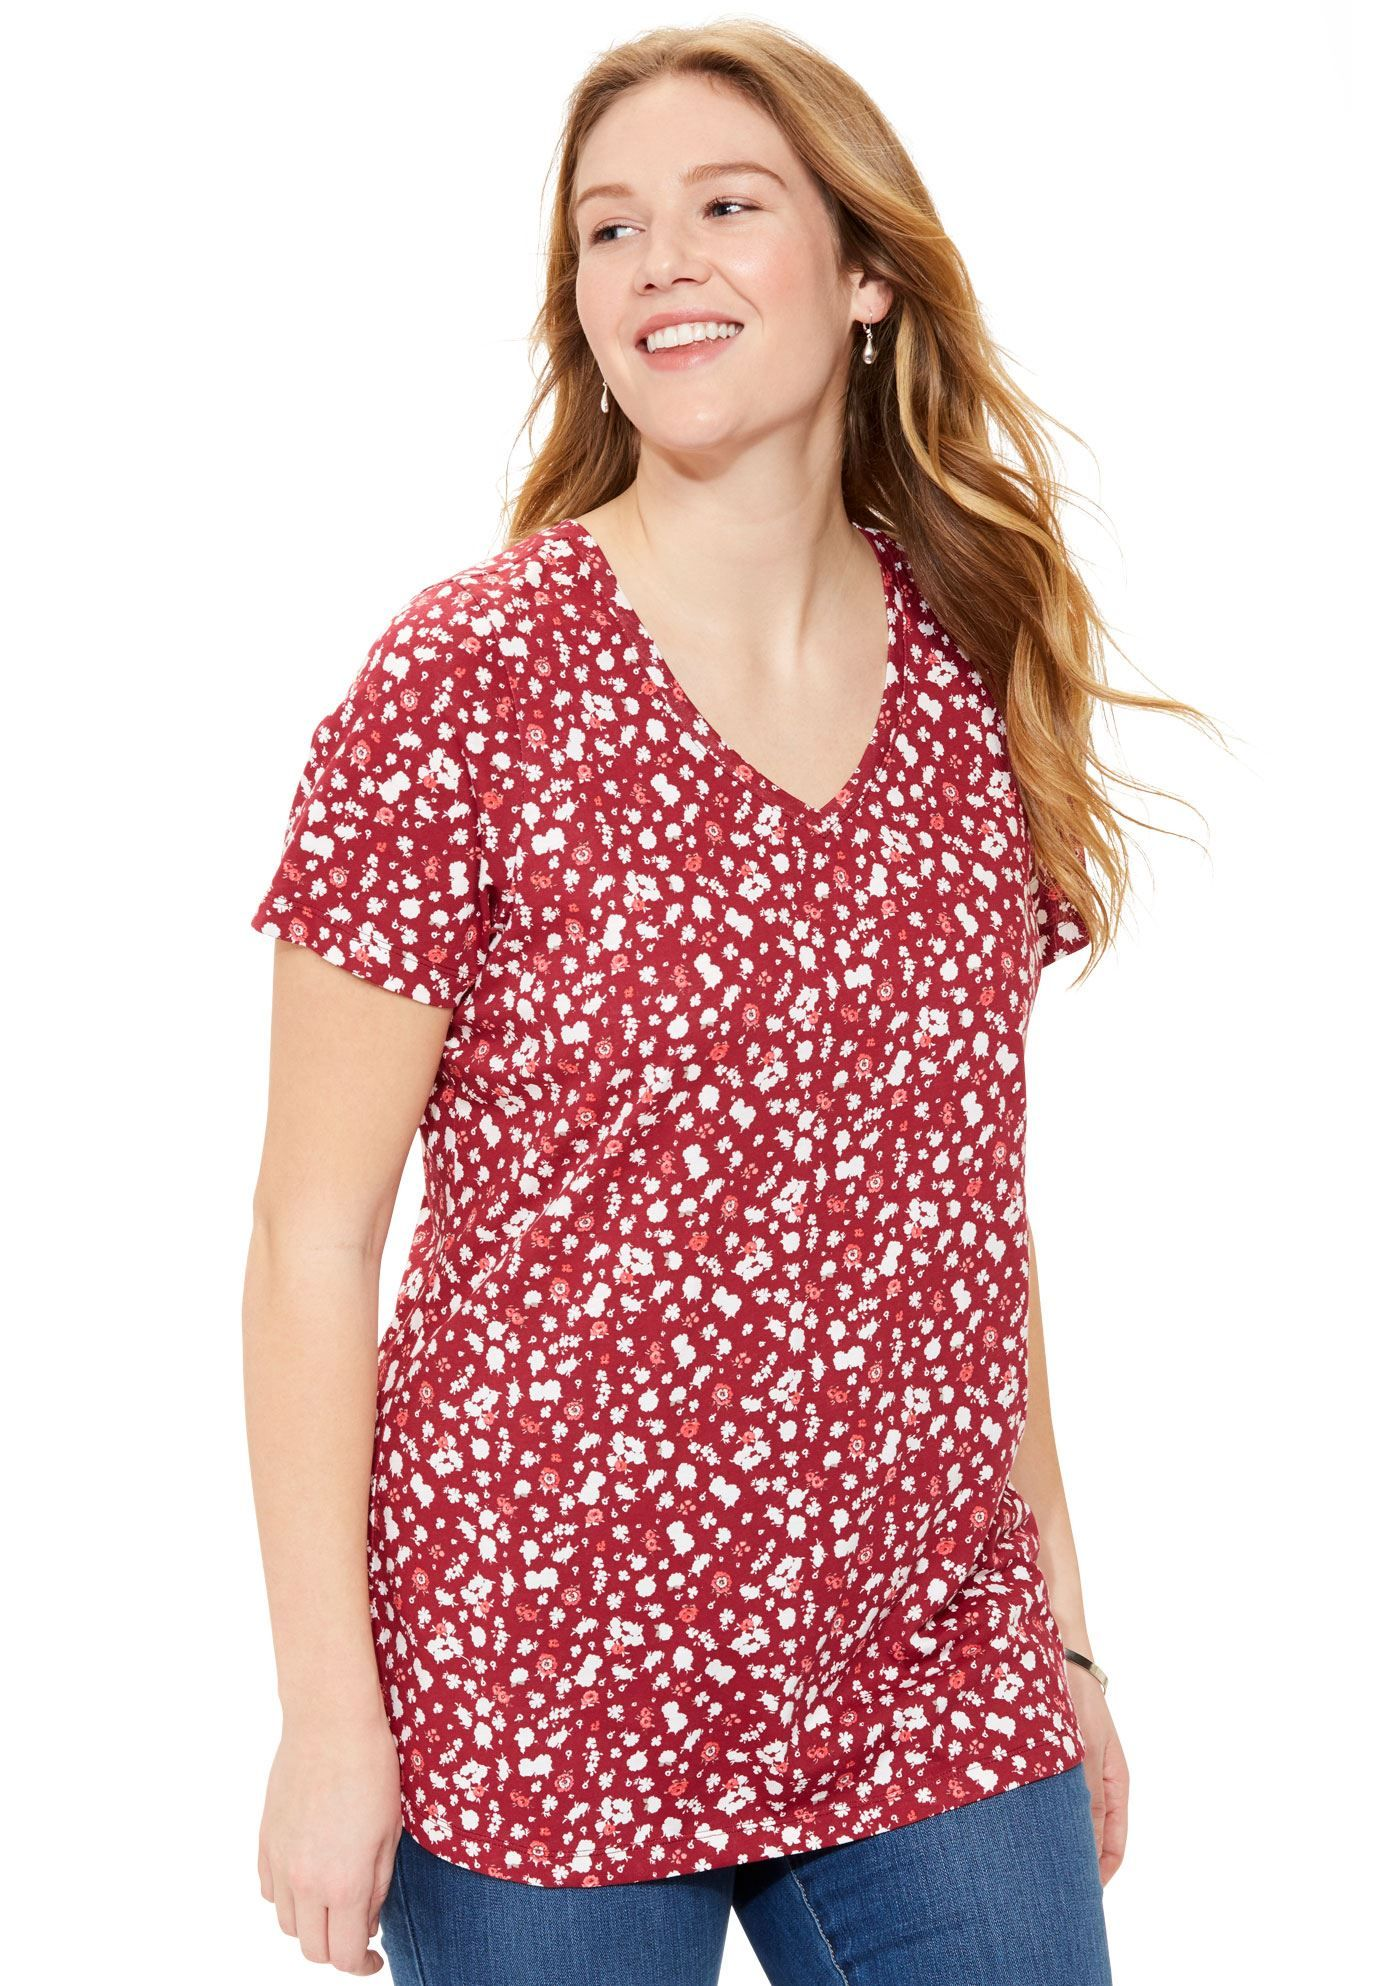 96250a94082 Perfect printed V-neck top - Women s Plus Size Clothing